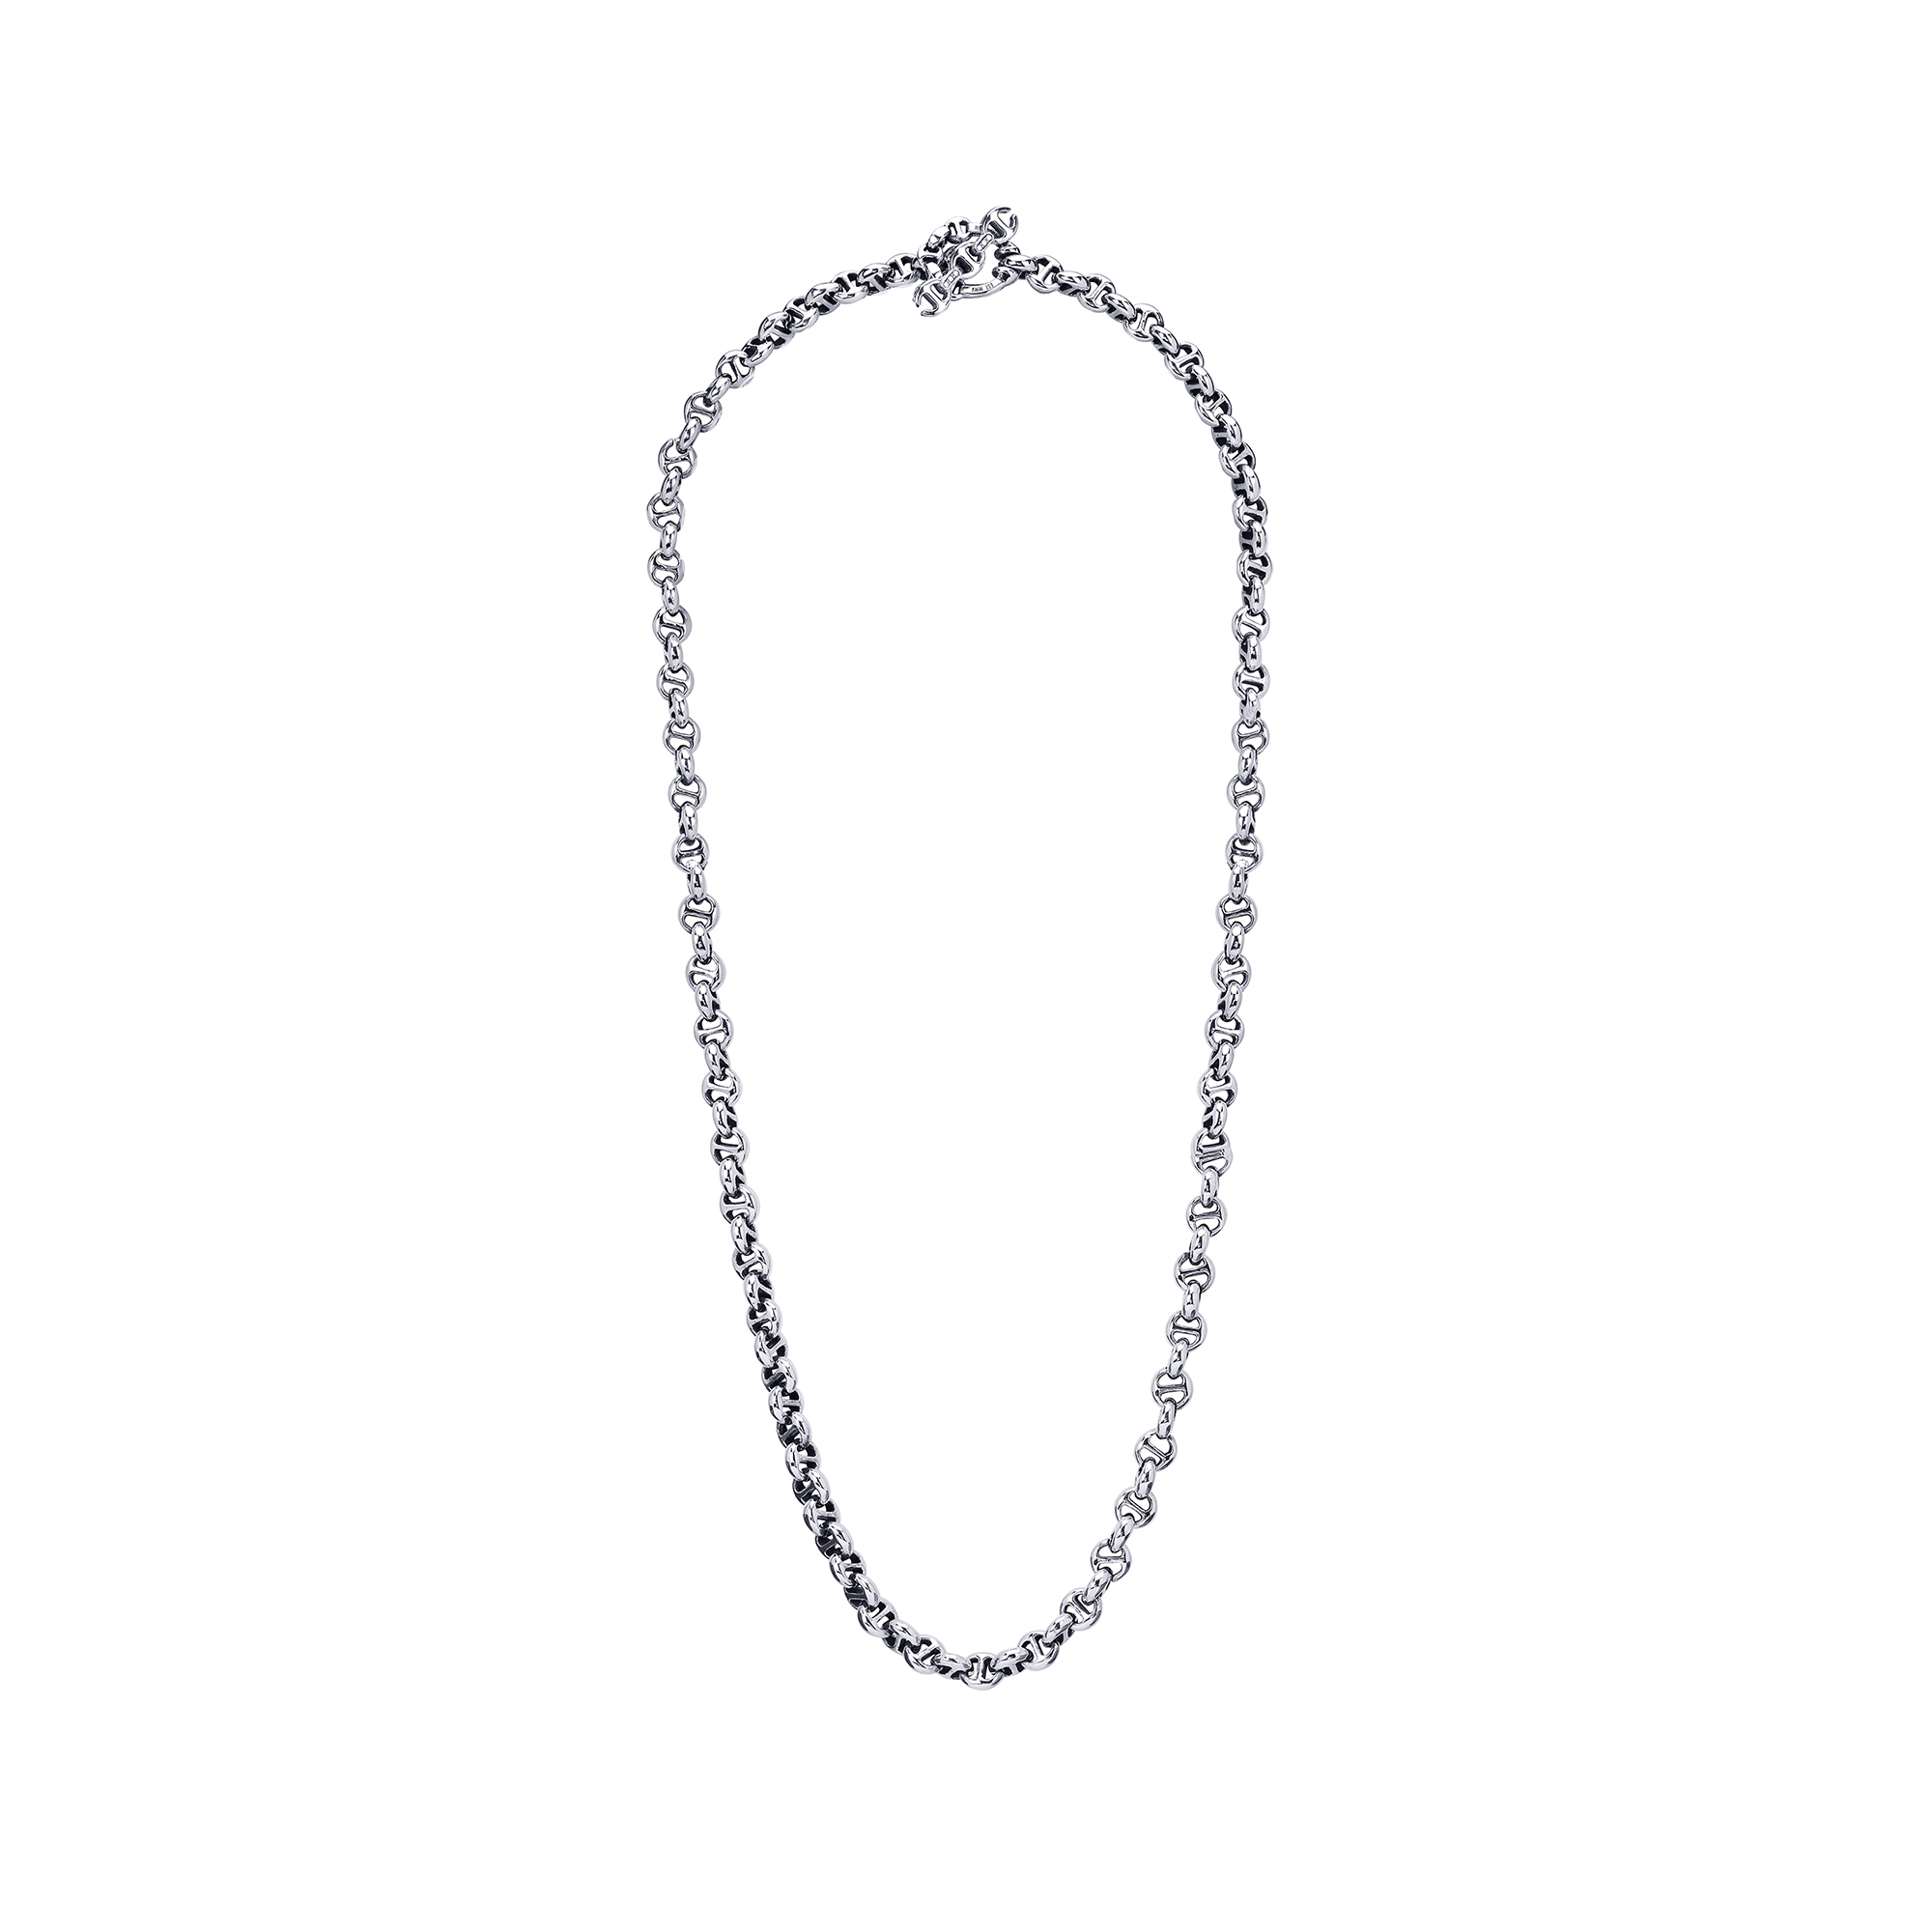 16inchi 5MM OPEN-LINK NECKLACE